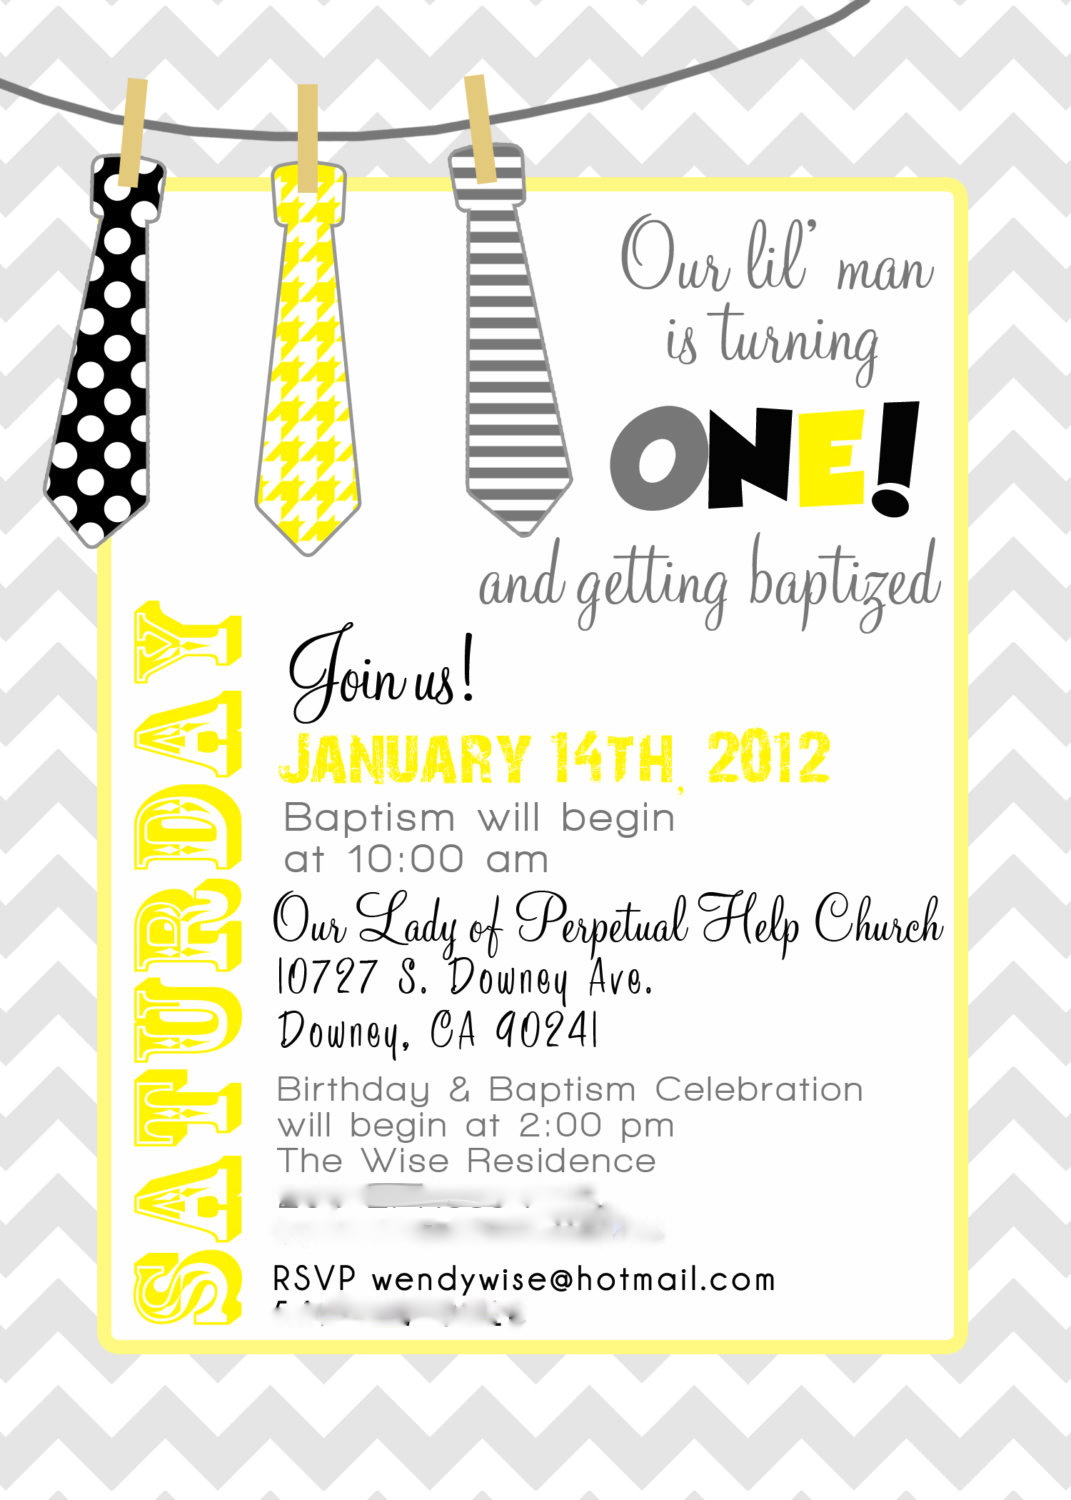 Whimsy & Wise Events: {Whimsy & Wise} Our Little Man is turning one!